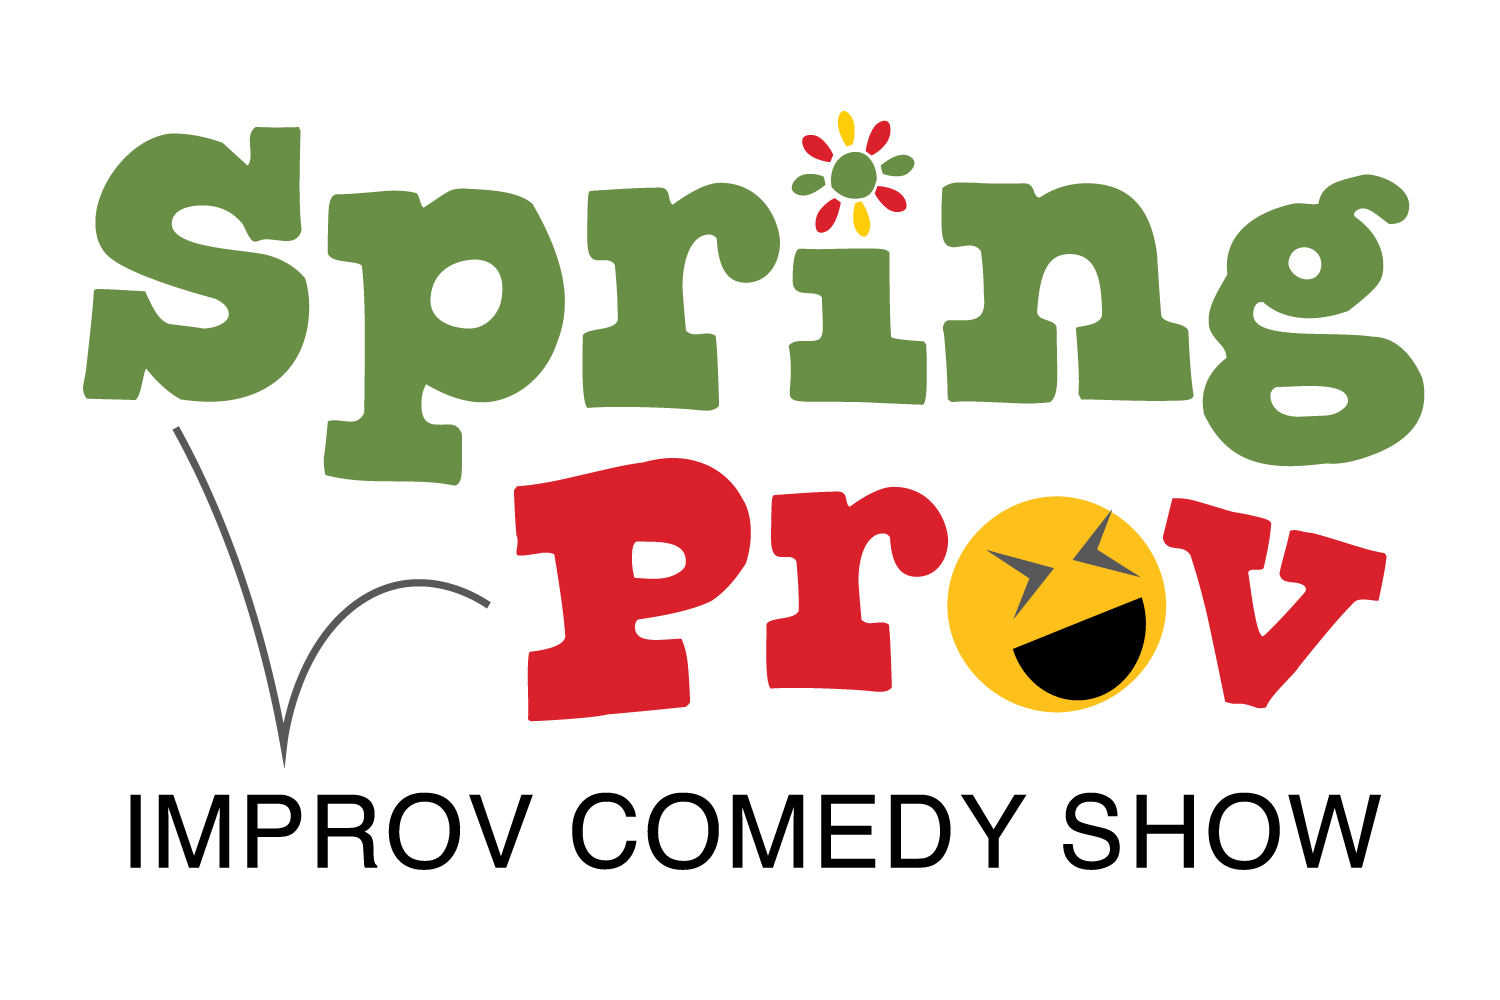 A NEW SEASON TO LAUGH   FRIDAY, APRIL 5TH • WAREHOUSE 21 • 7-8:30PM  $15 ONLINE OR AT DOOR • 18 AND OVER SHOW    CLICK HERE TO GET TICKETS